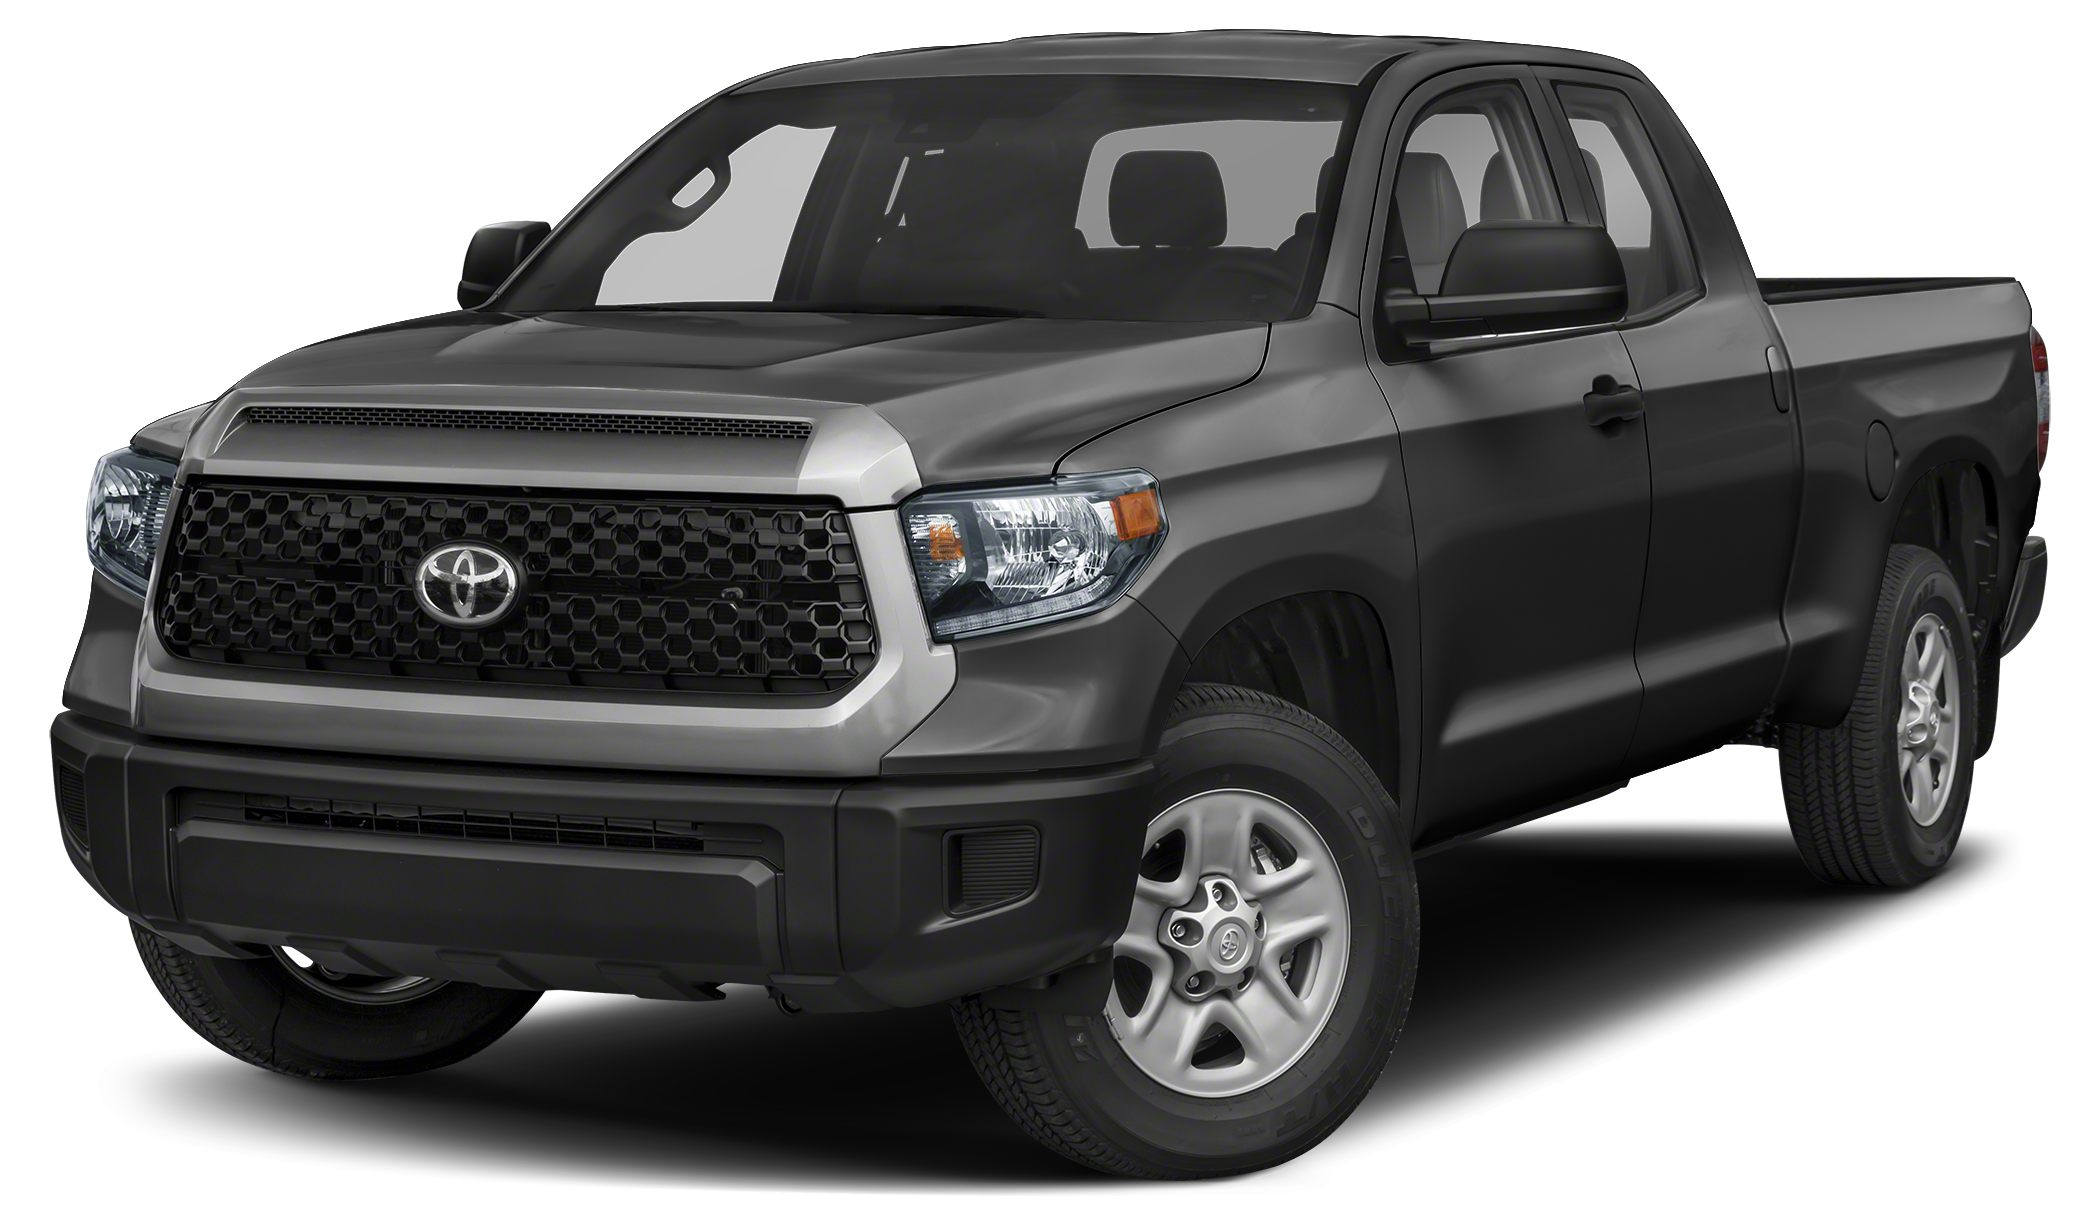 2018 Toyota Tundra SR5 SR5 trim MIDNIGHT BLACK METALLIC exterior and BLACK interior iPodMP3 Inp